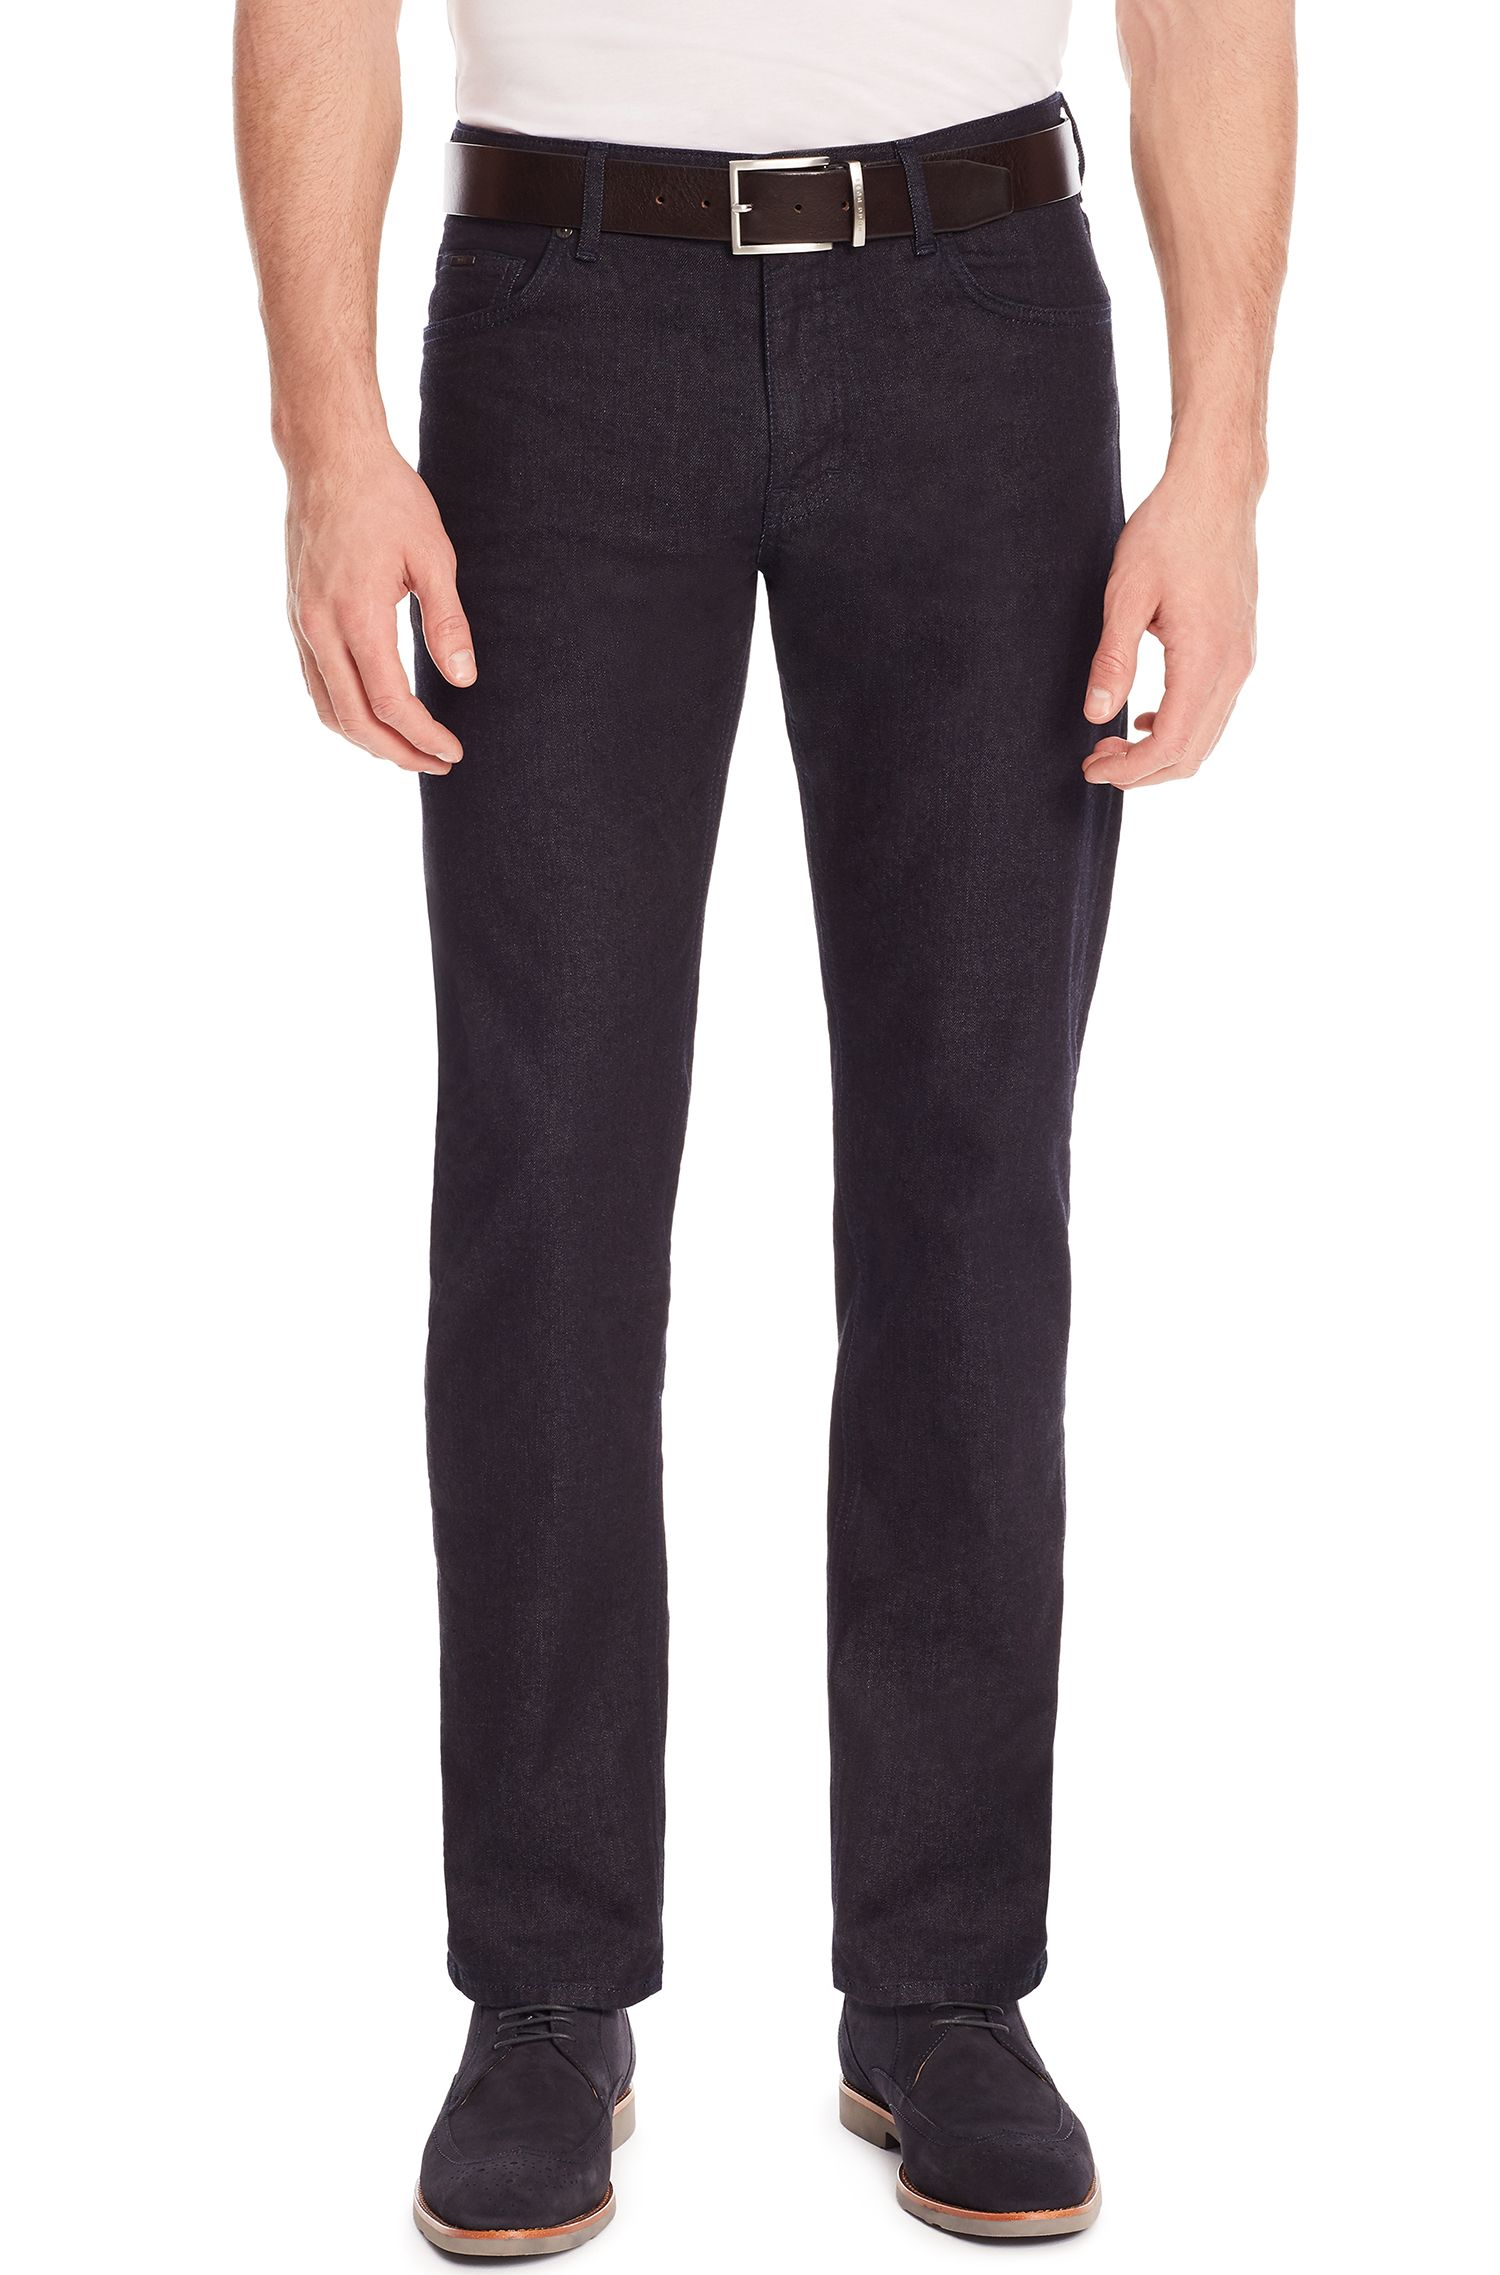 11 oz Stretch Cotton Jeans, Relaxed Fit | Albany, Dark Blue